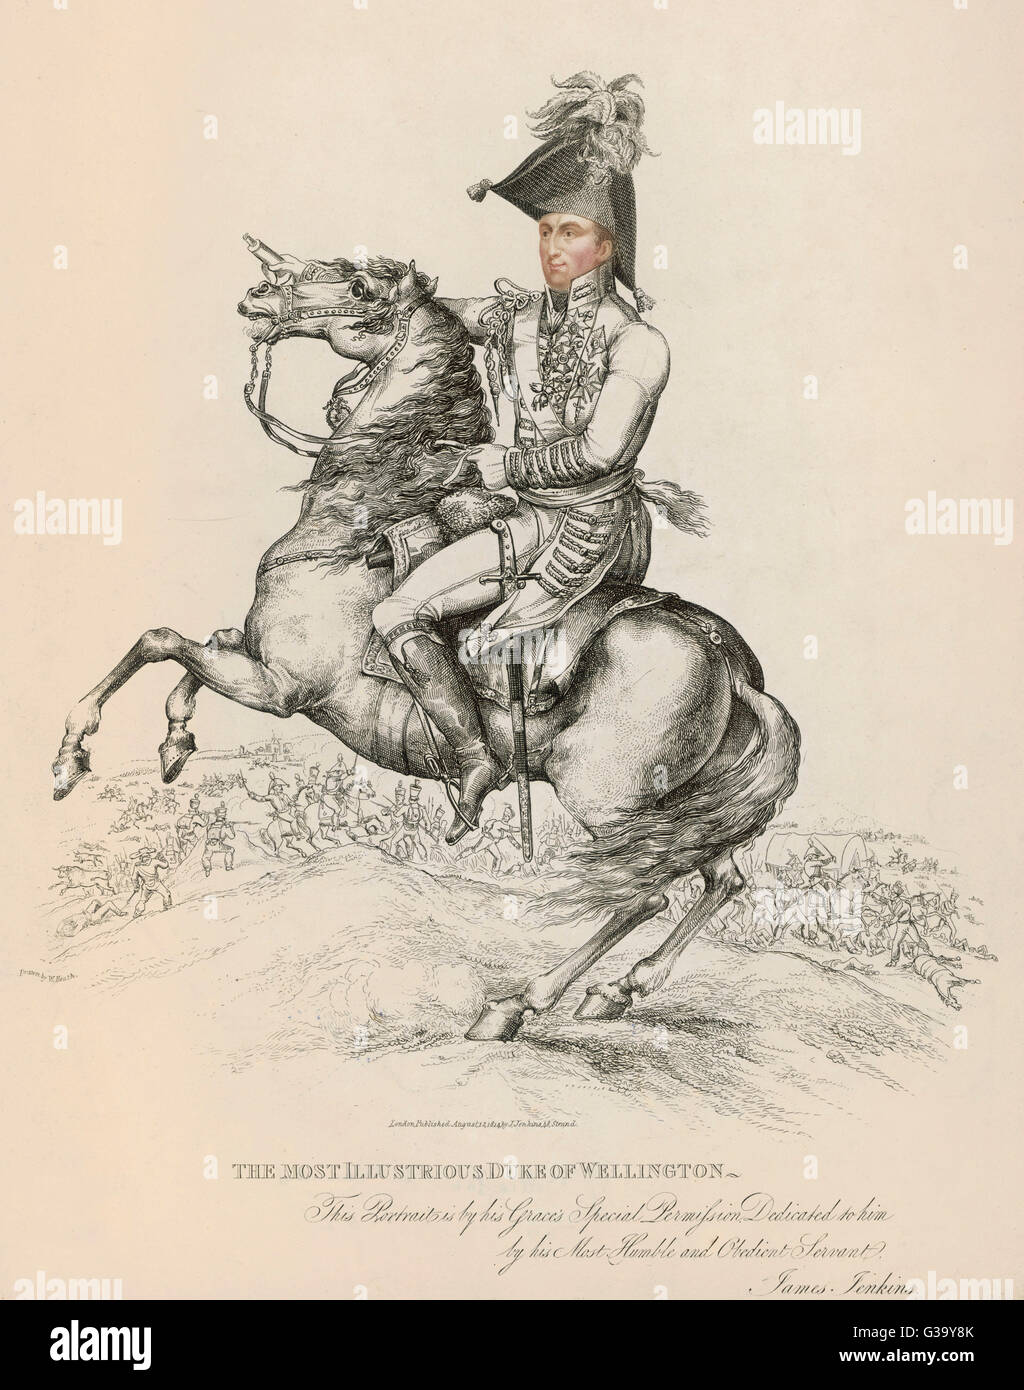 Arthur Wellesley, duke of  Wellington, soldier and  statesman, on horseback  in 1814       Date: 1769 - 1852 - Stock Image